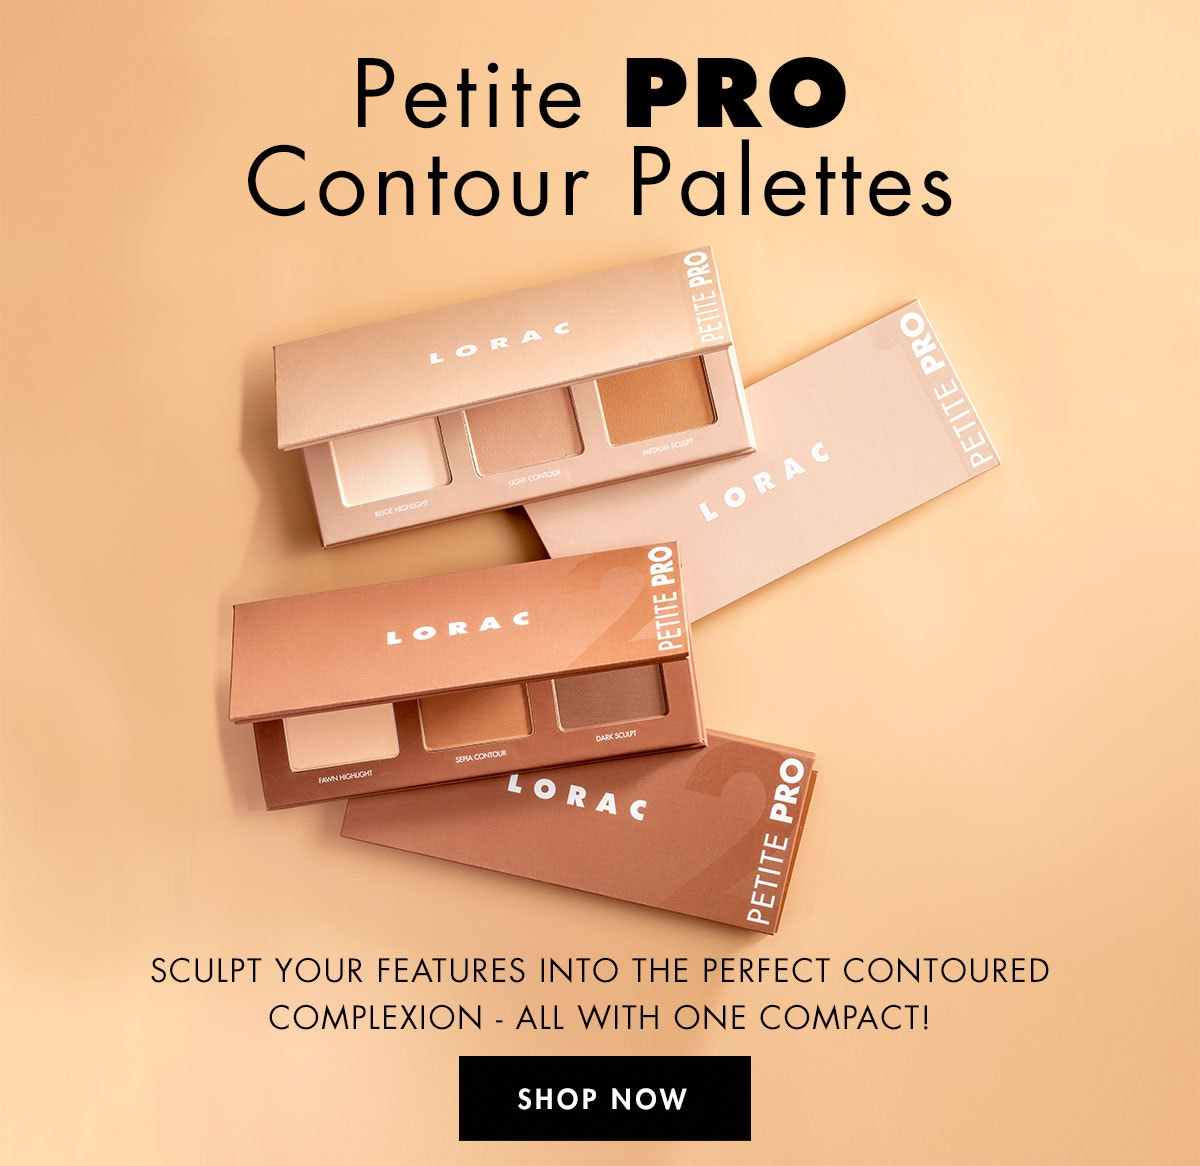 New Petite PRO Contour Palette   Shop Now   LORAC   Products angleded lids open, with sand in background